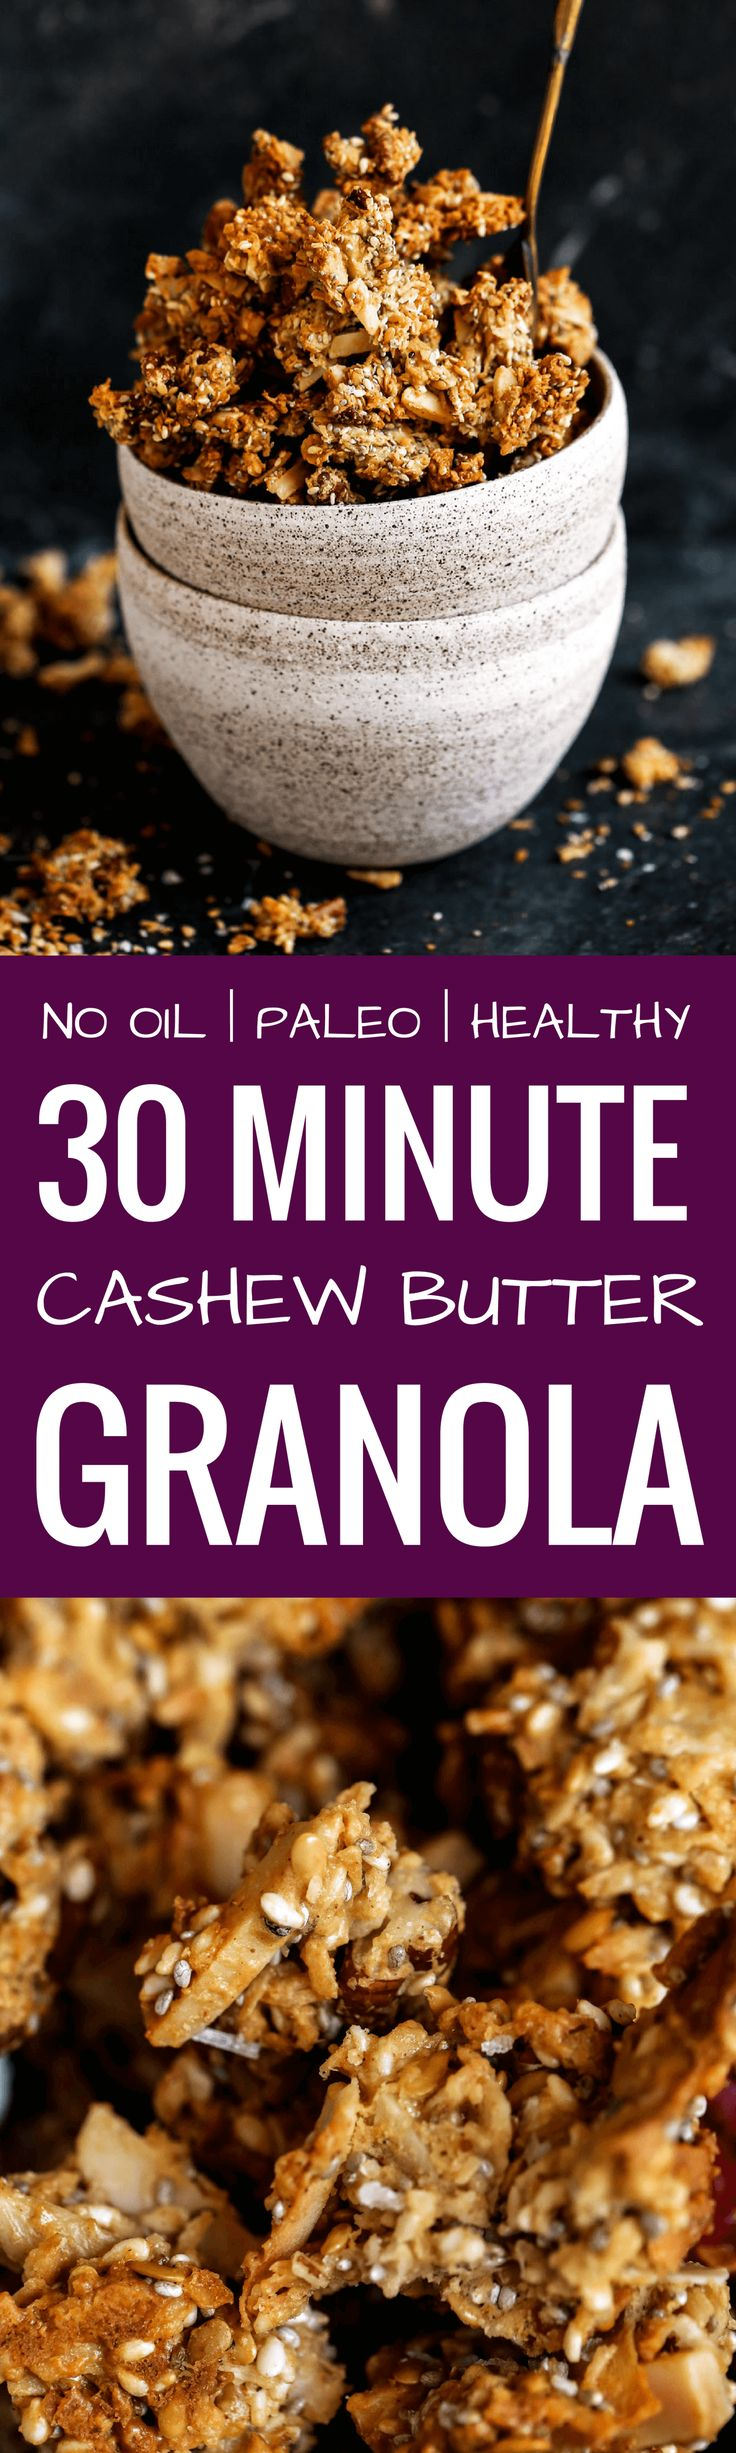 Crispy, crunchy, no oil or oats, or refined sugar! This healthy Paleo granola recipe is insanely delish and made in 30 minutes! Perfectly paired with coconut yogurt. Made with toasty coconut, almond, nutty infusions, and cinnamon spice. Sweetened naturally.! Made in minutes. Whole30 breakfast recipes. Whole30 breakfast ideas. Whole30 granola. Paleo granola recipe. Easy paleo granola. Best grain free granola recipe. Healthy breakfast ideas. Easy breakfast recipes. Whole30 meal...